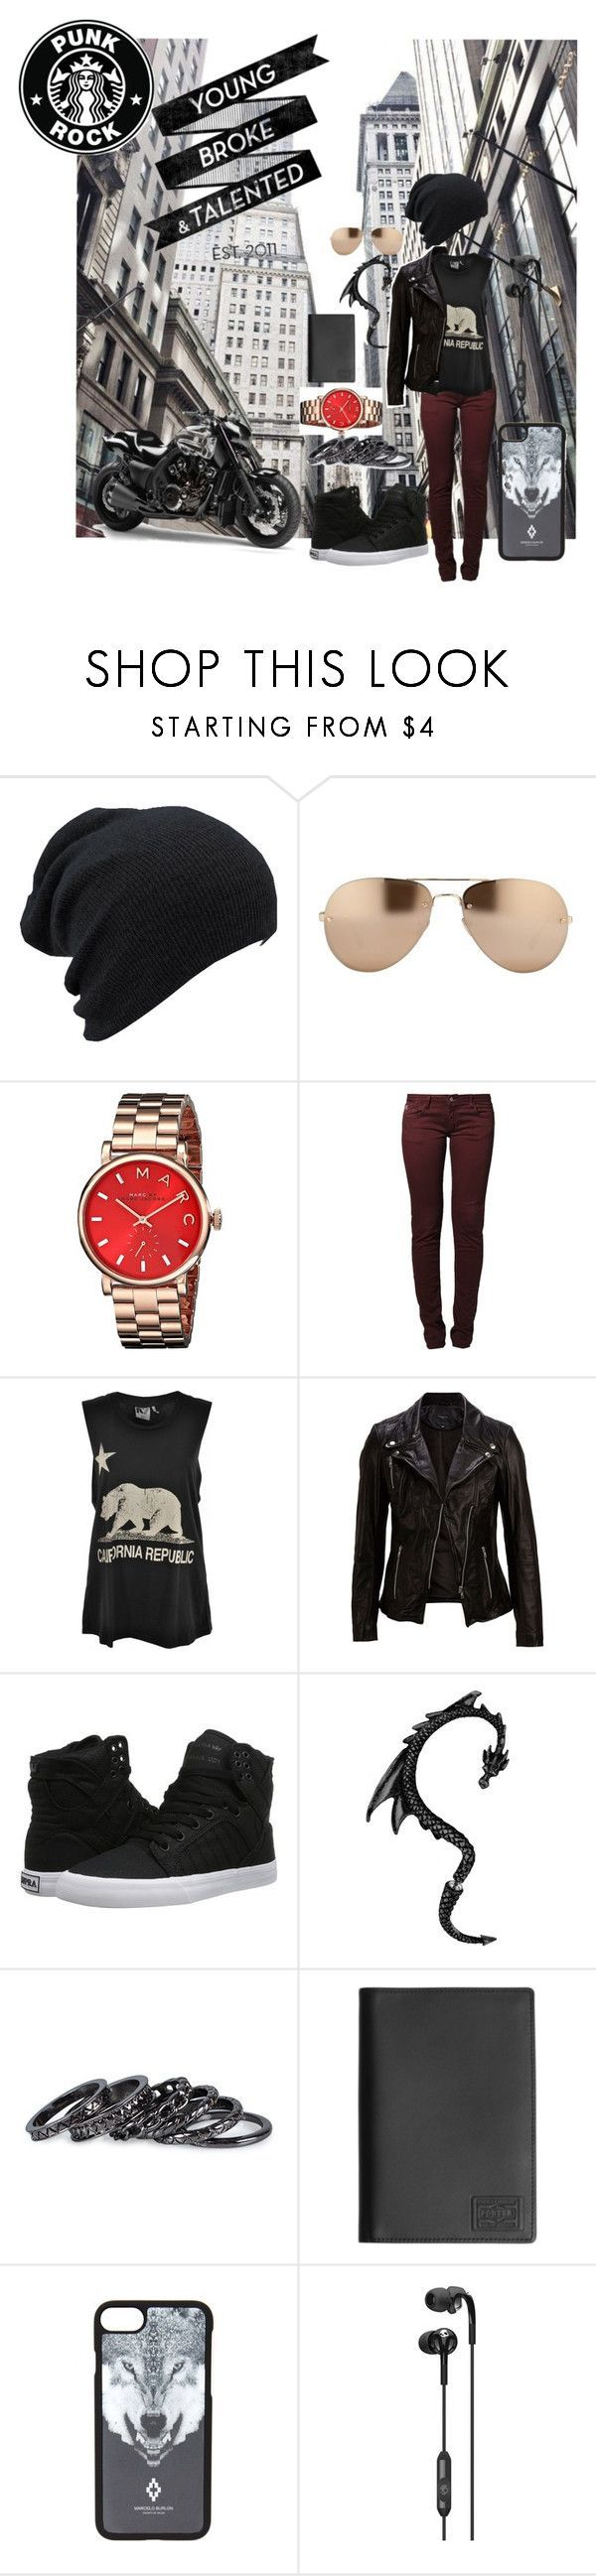 """""""tony stark somewhat"""" by alyssahernan on Polyvore featuring Linda Farrow, Marc by Marc Jacobs, Le Temps Des Cerises, Rebel Yell, SELECTED, Supra, Pieces, Wings + Horns, Marcelo Burlon and Skullcandy"""